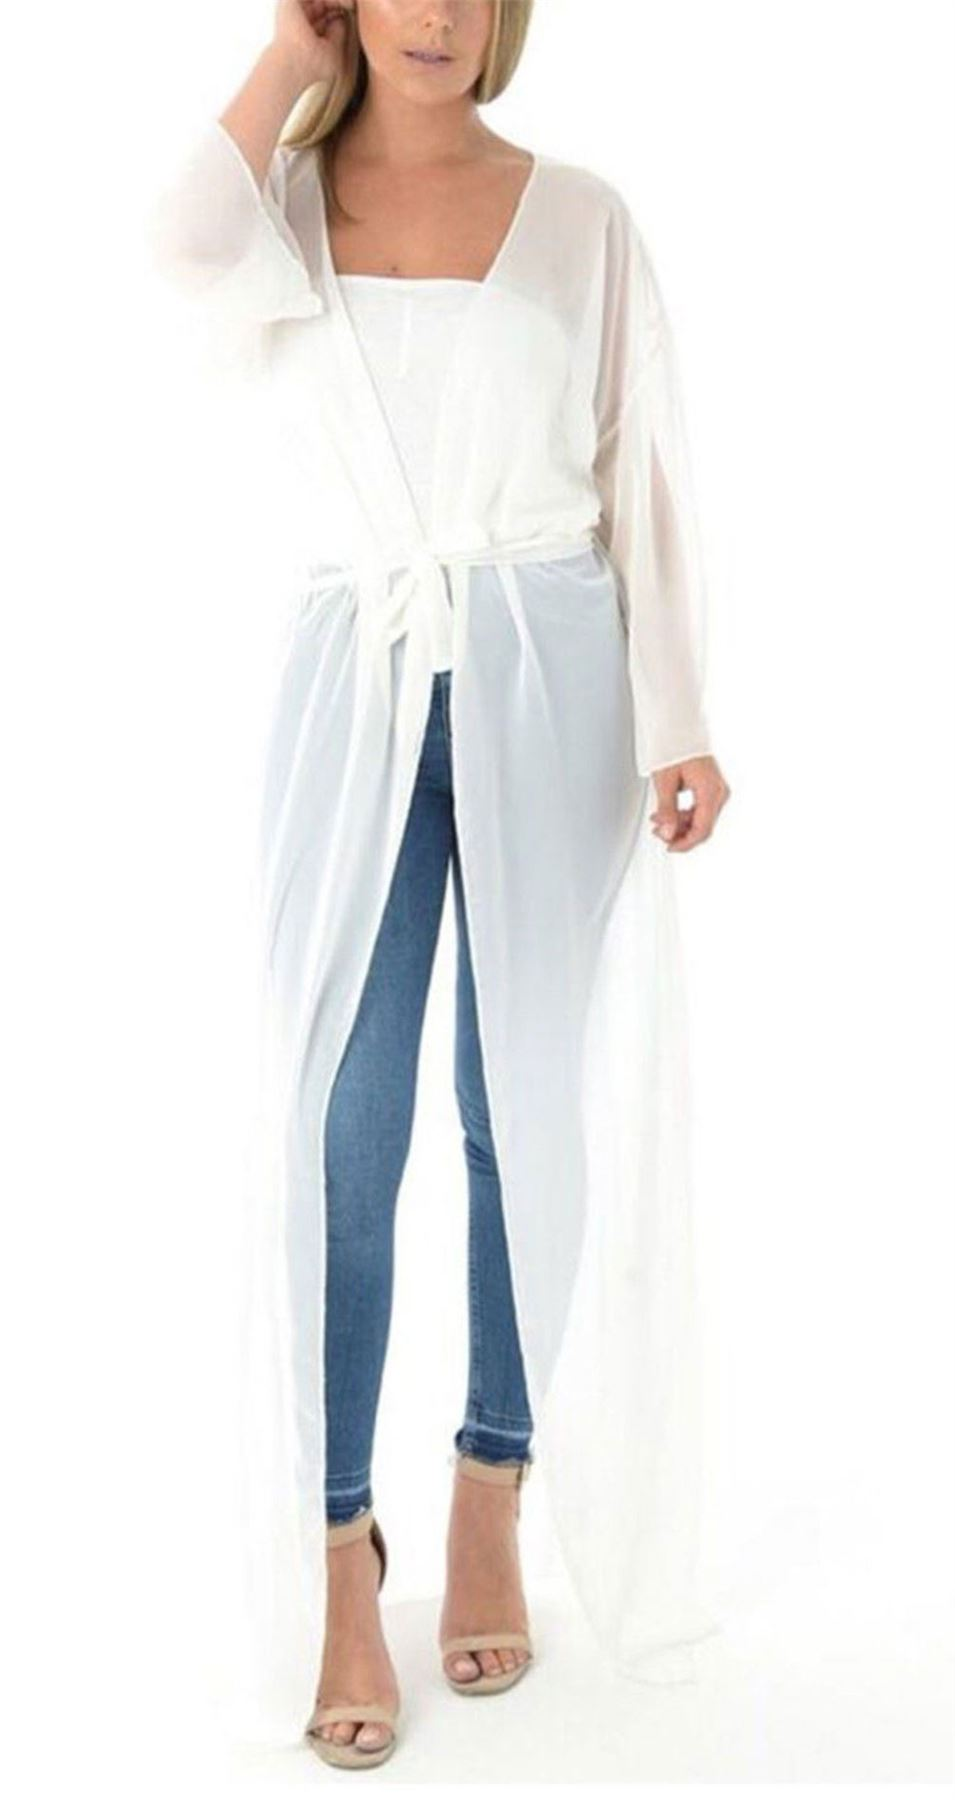 2108d0d30 Ladies Sheer Mesh Belted Chiffon Kimono Maxi Womens Long Sleeve ...